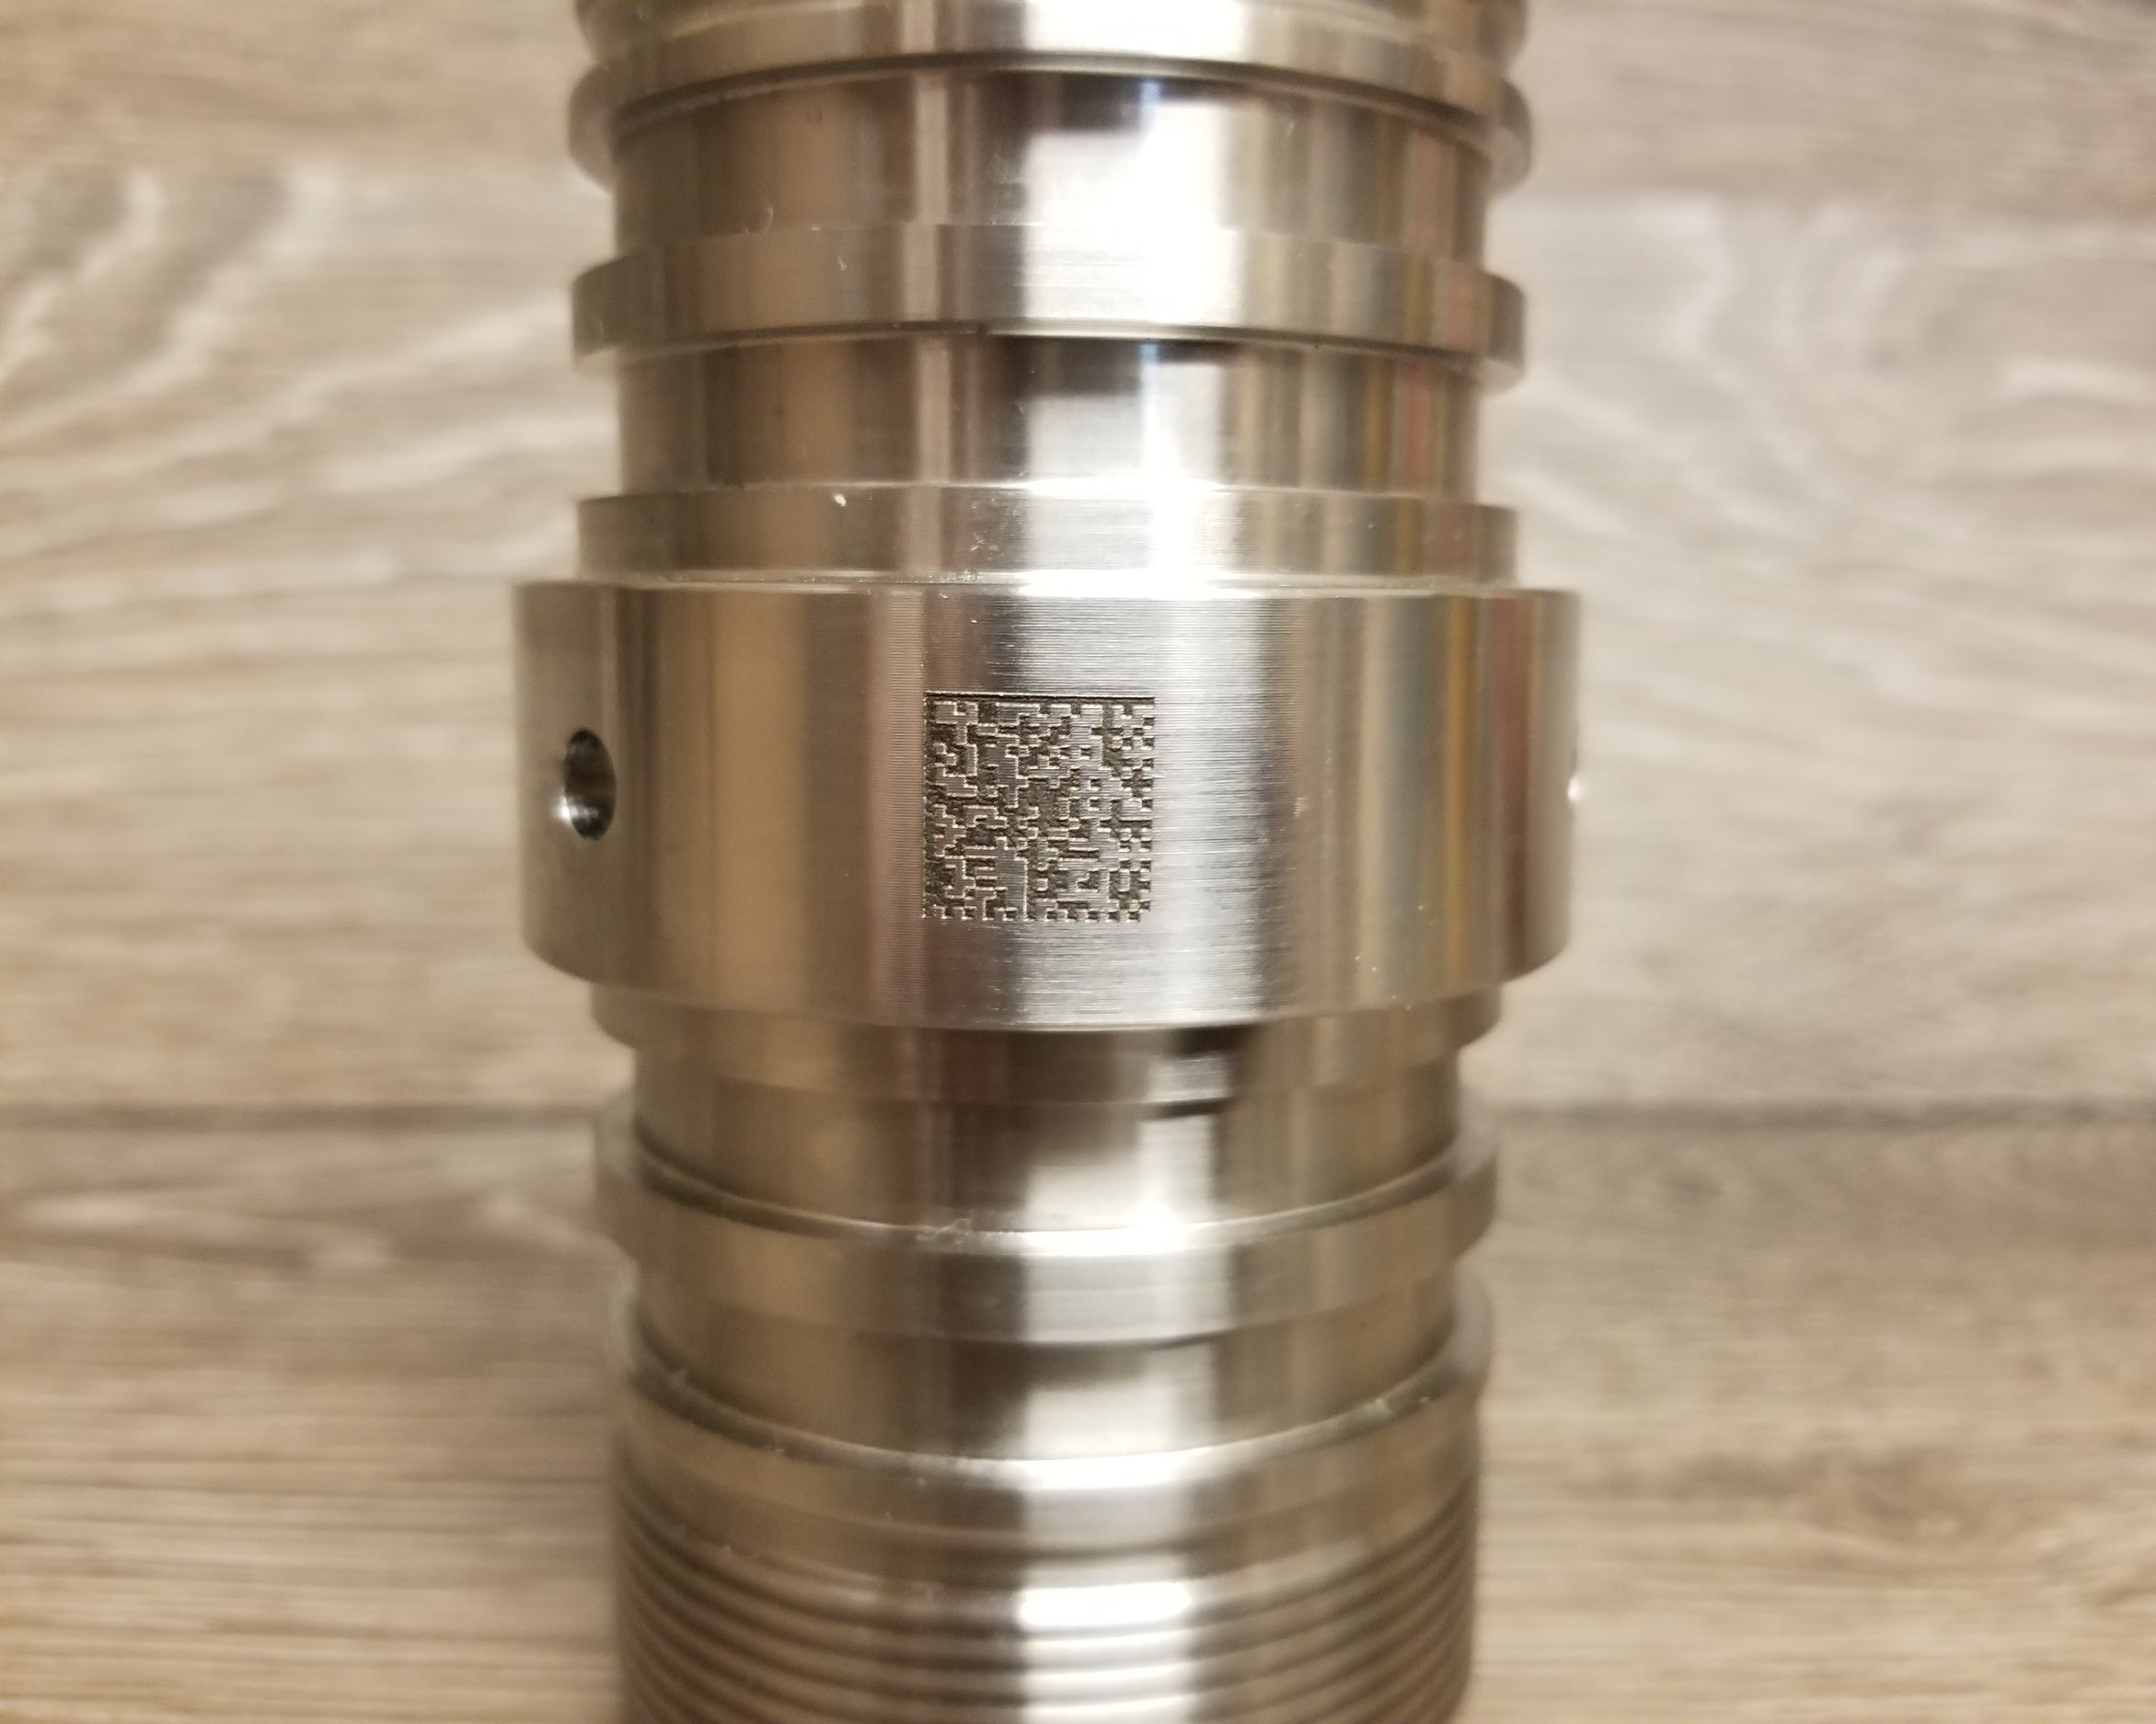 QR Codes - Add fully scan-able QR Codes to any part, piece, or material. Laser engraving, marking, etching, or direct printing is available based on the specifications or the project.